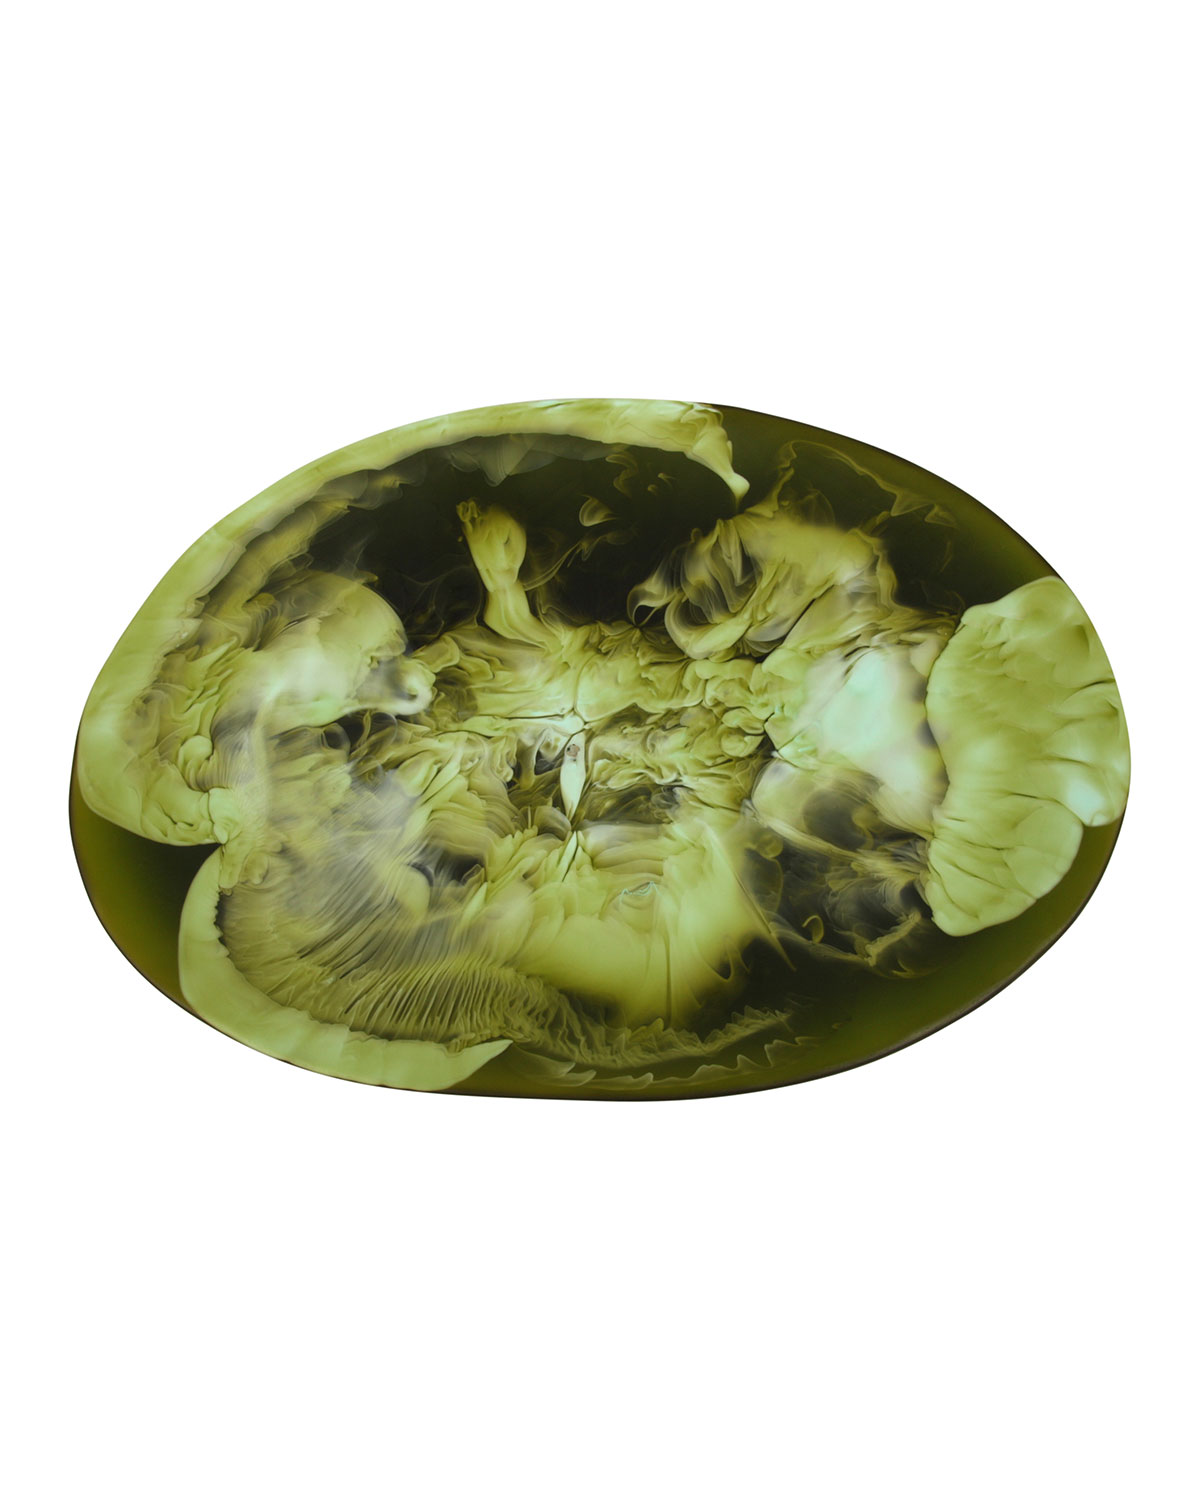 dinosaur-designs-resin-platter-blog0417.jpg